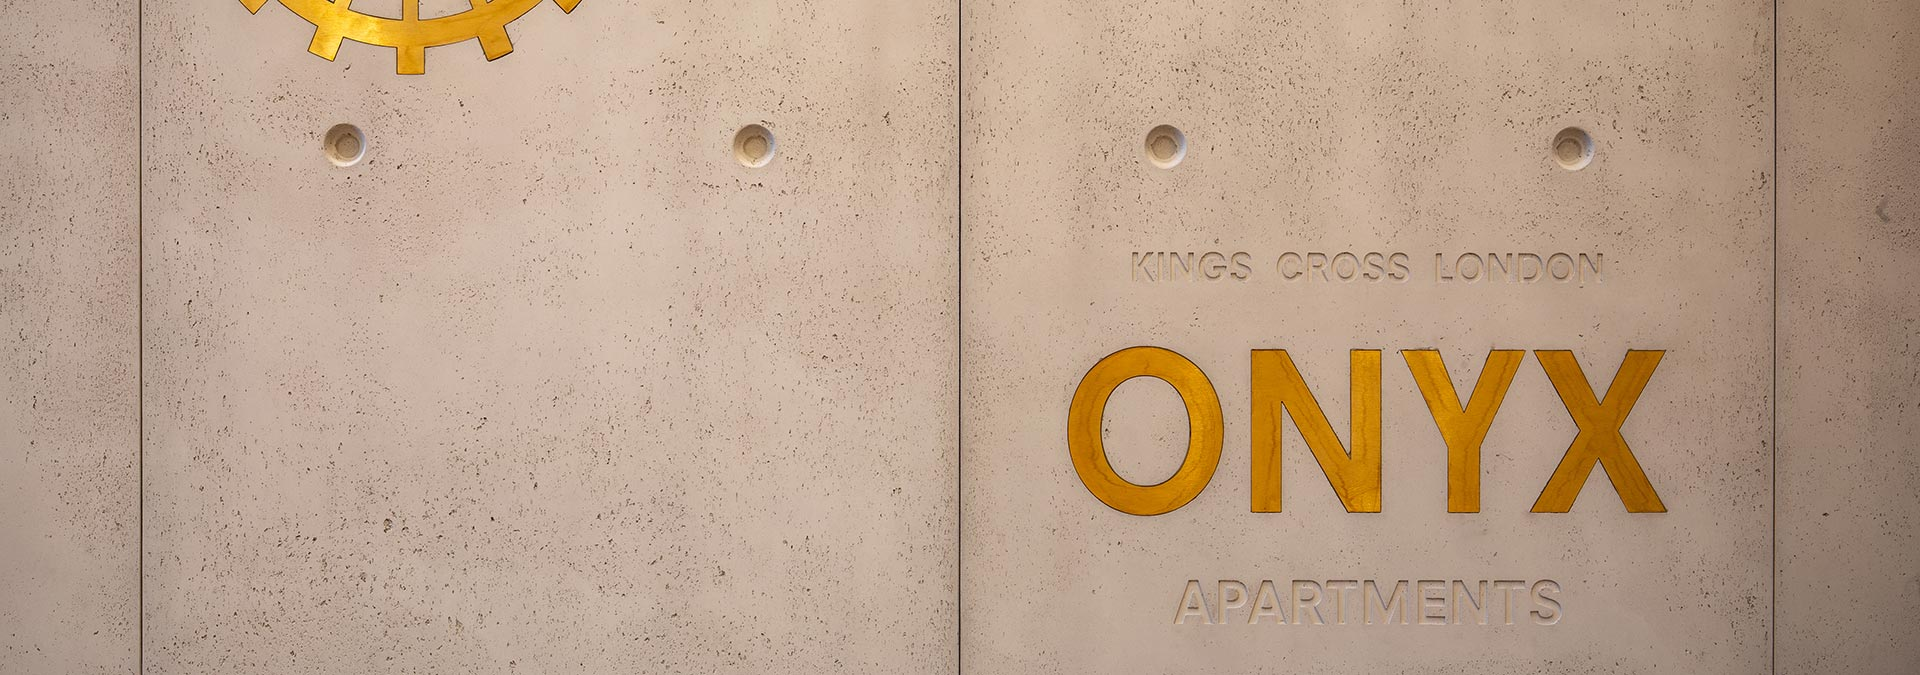 Onyx Apartments, Kings Cross